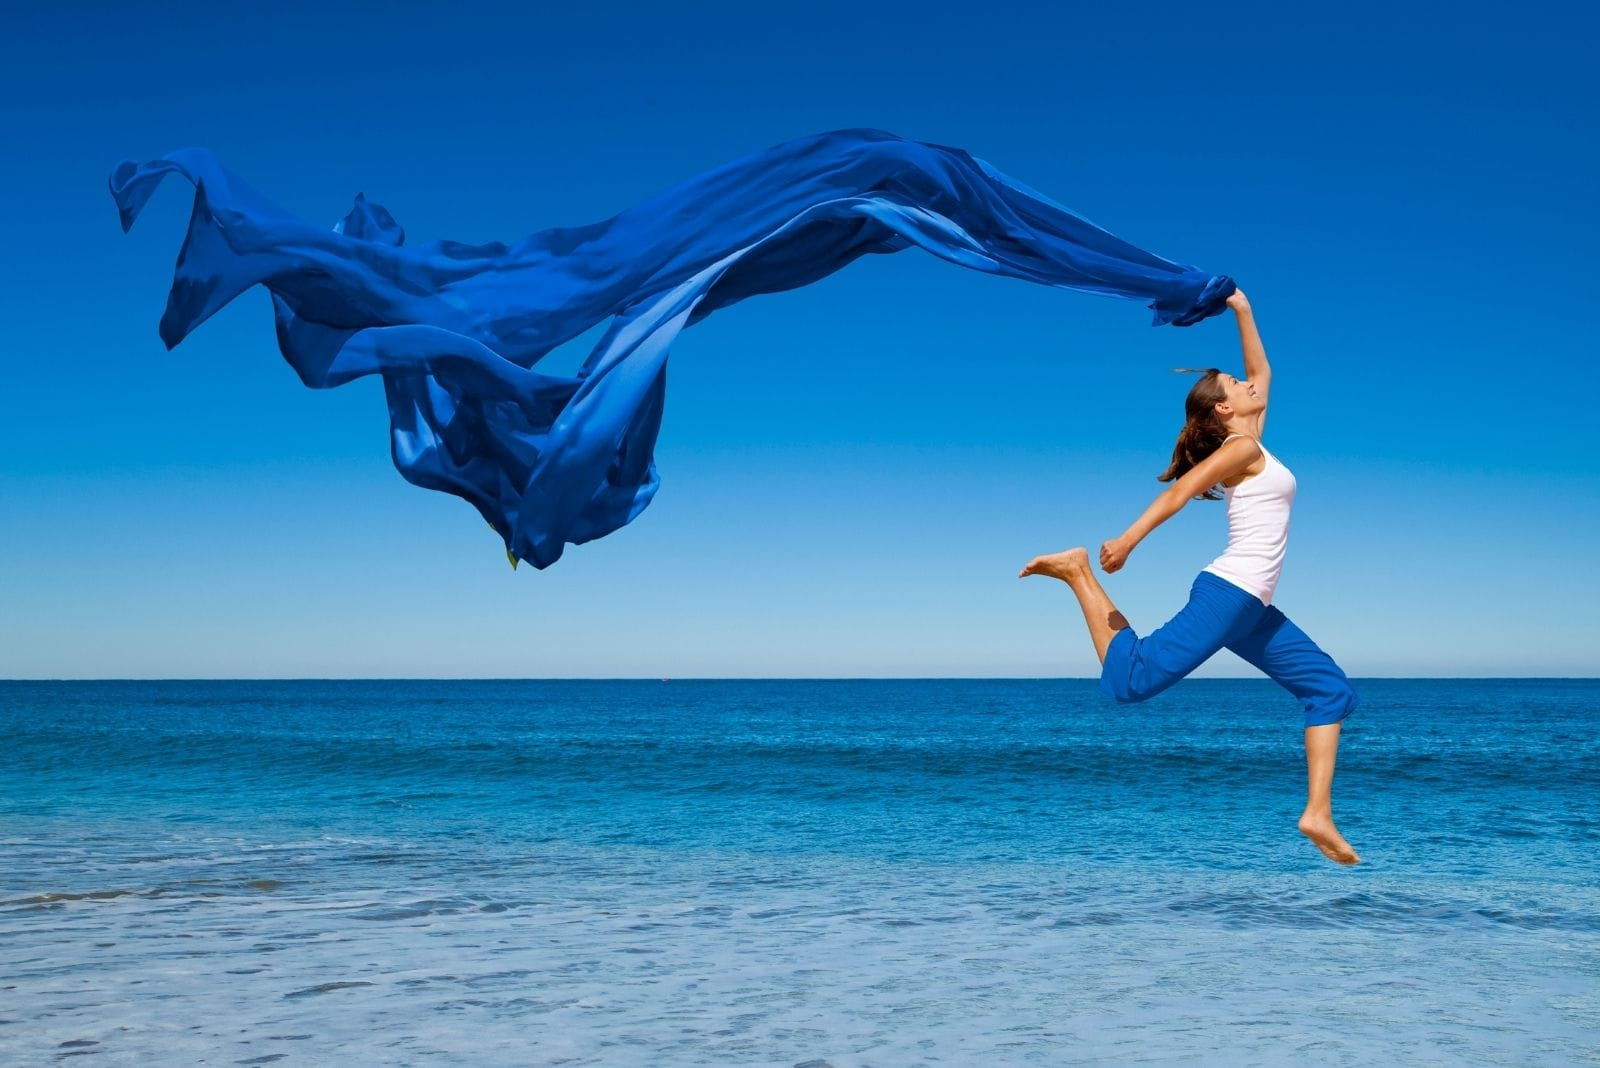 woman jump with joy near the blue sea carrying a blue cloth blown by the wind